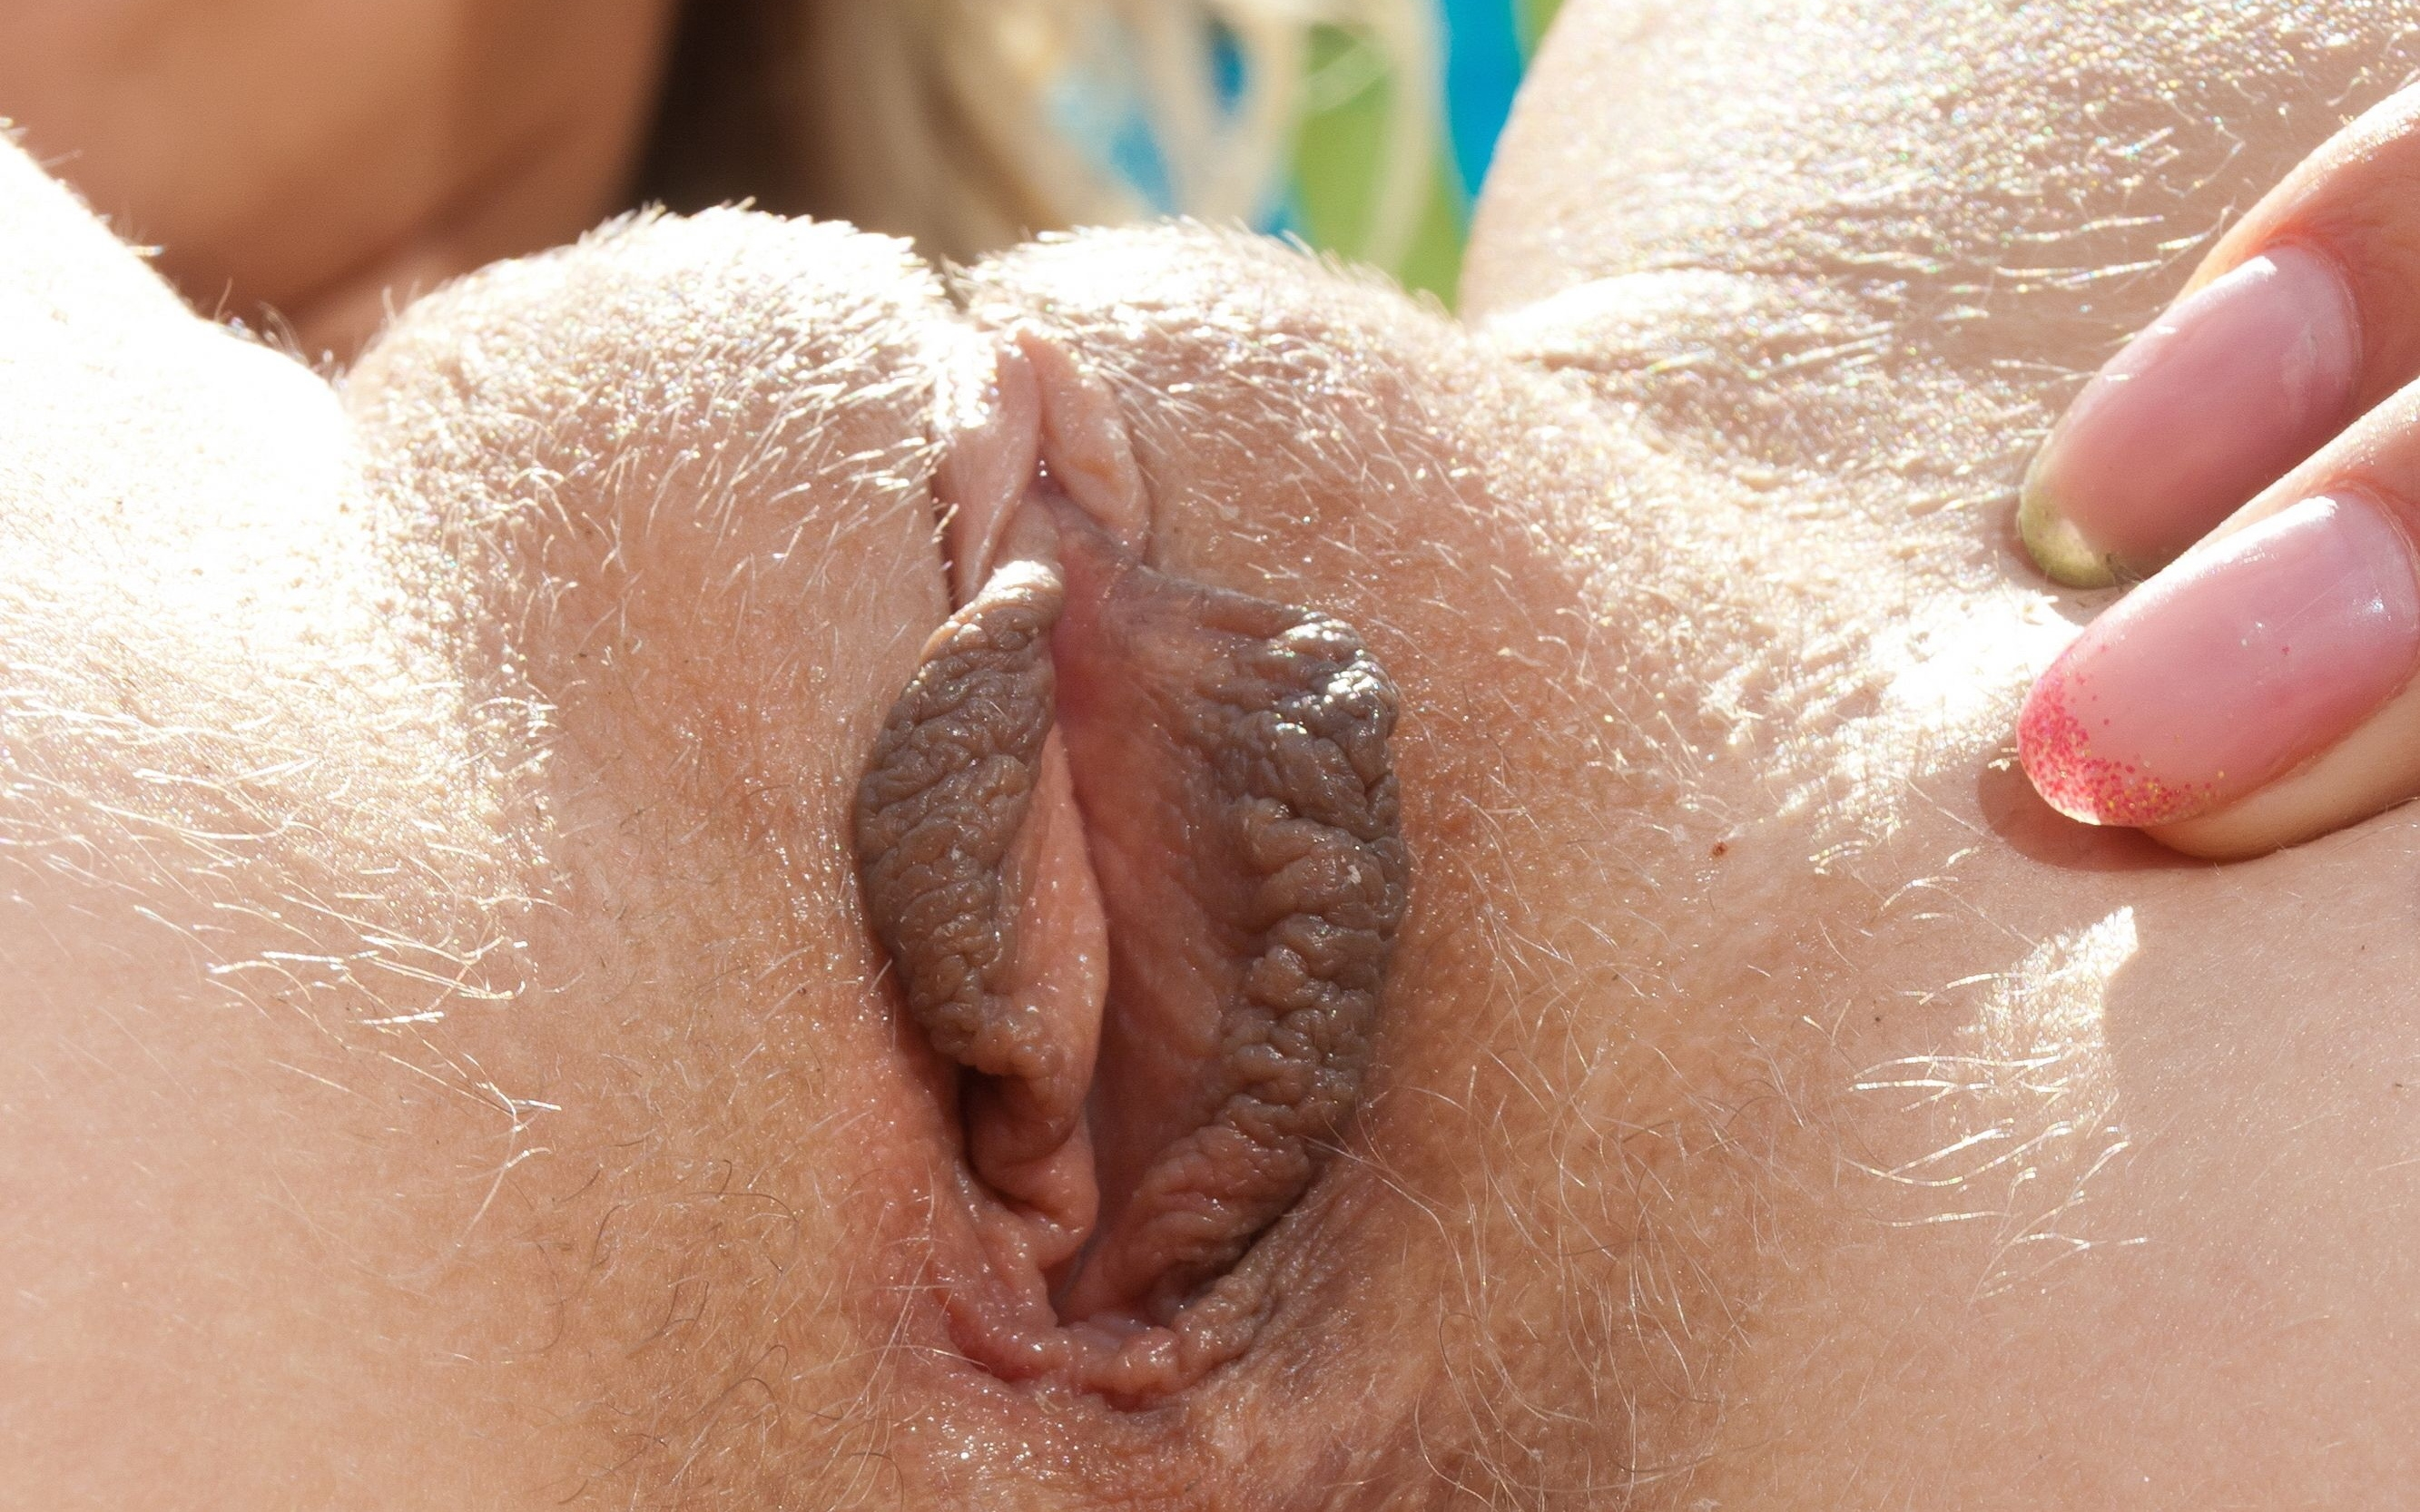 Close-up of pussy